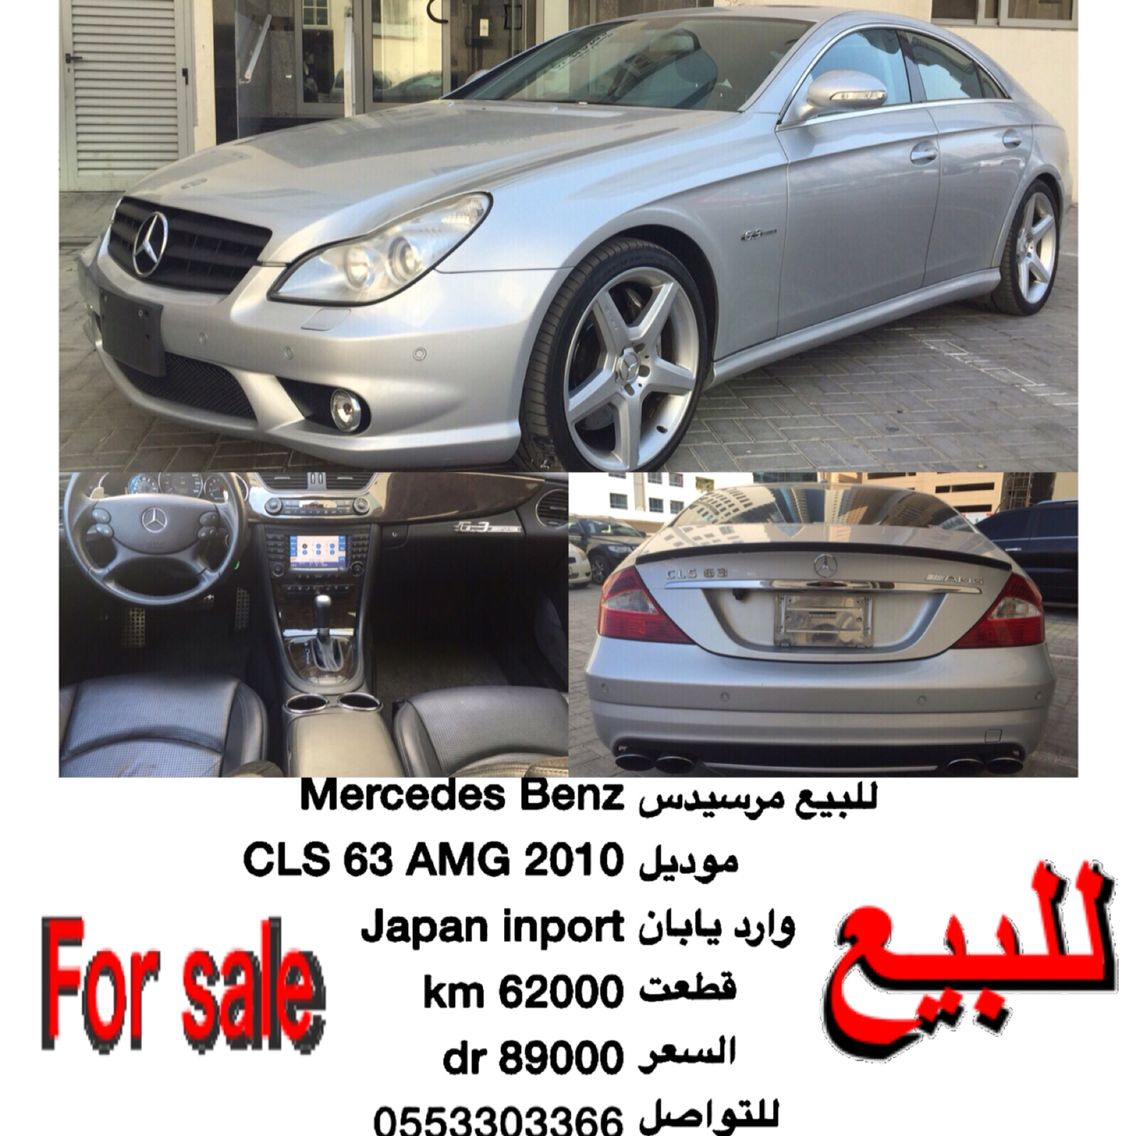 للبيع مرسيدس Mercedes Benz Cls 63 Amg 2010 Japan Inport 62000 Km 89000 Dr 0553303366 اعلانvip مرسدس الواتساب Uae4cars2u Mercedes Benz Benz Cls 63 Amg